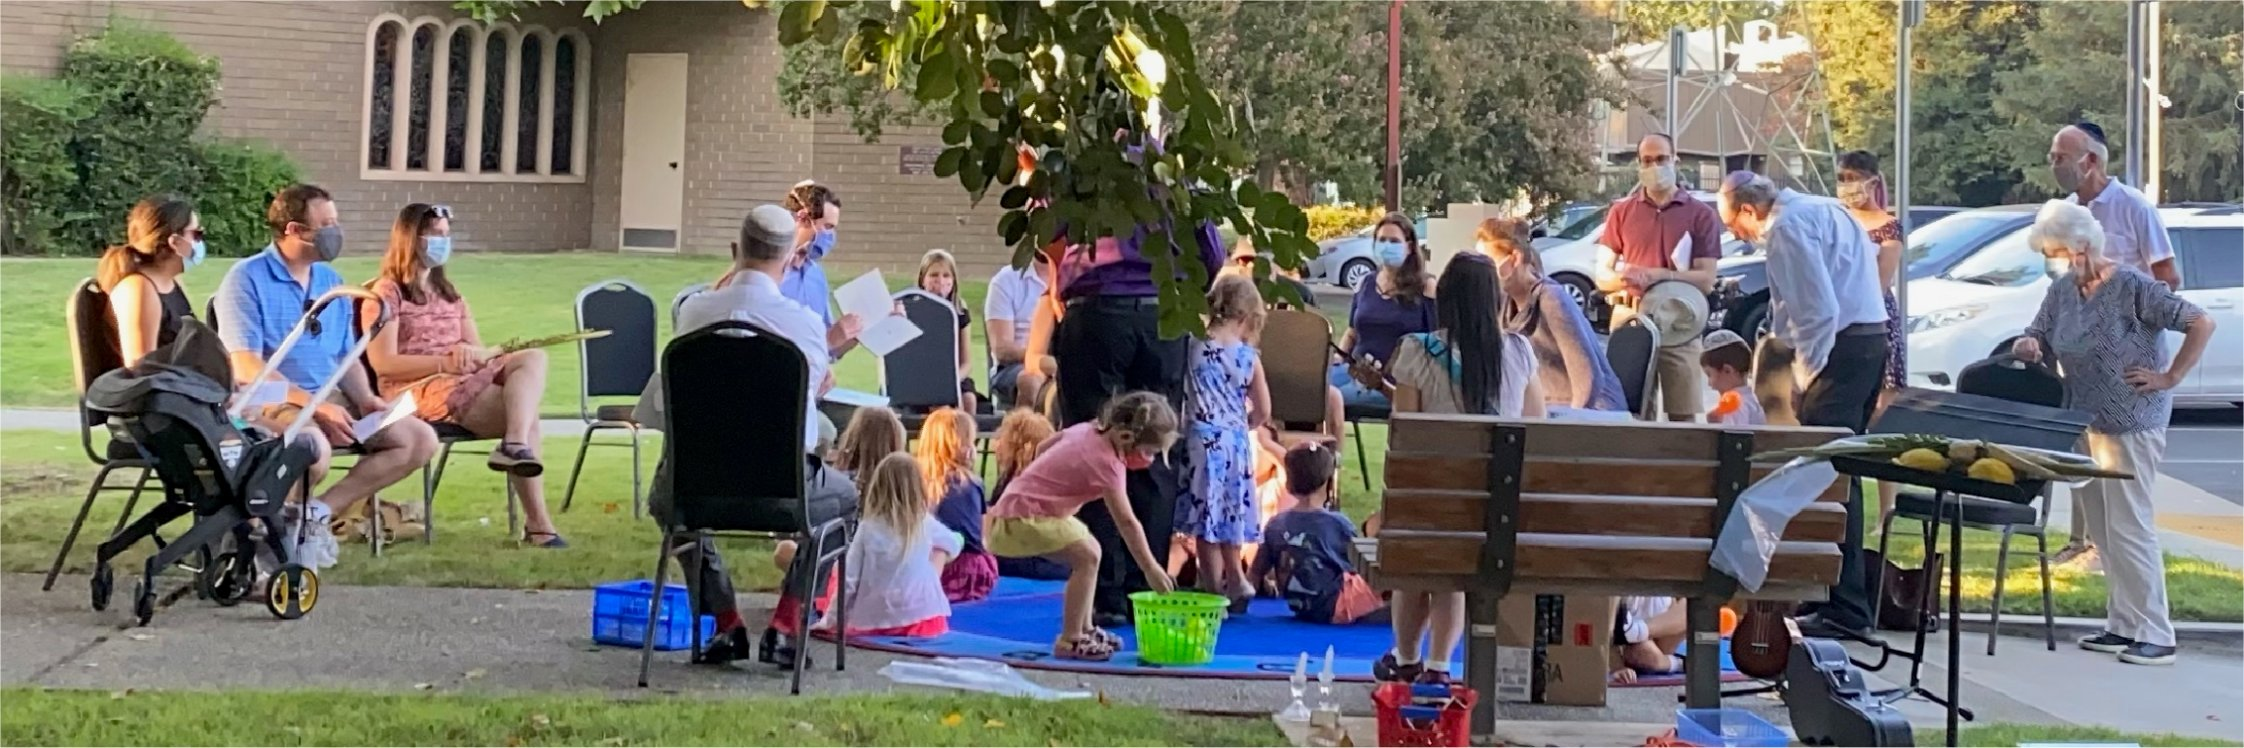 """<span class=""""slider_title"""">                                     Shababababa, Sept 24, 2021                                </span>                                                                                                                                                                                       <span class=""""slider_description"""">a kid-friendly Shabbat service</span>"""